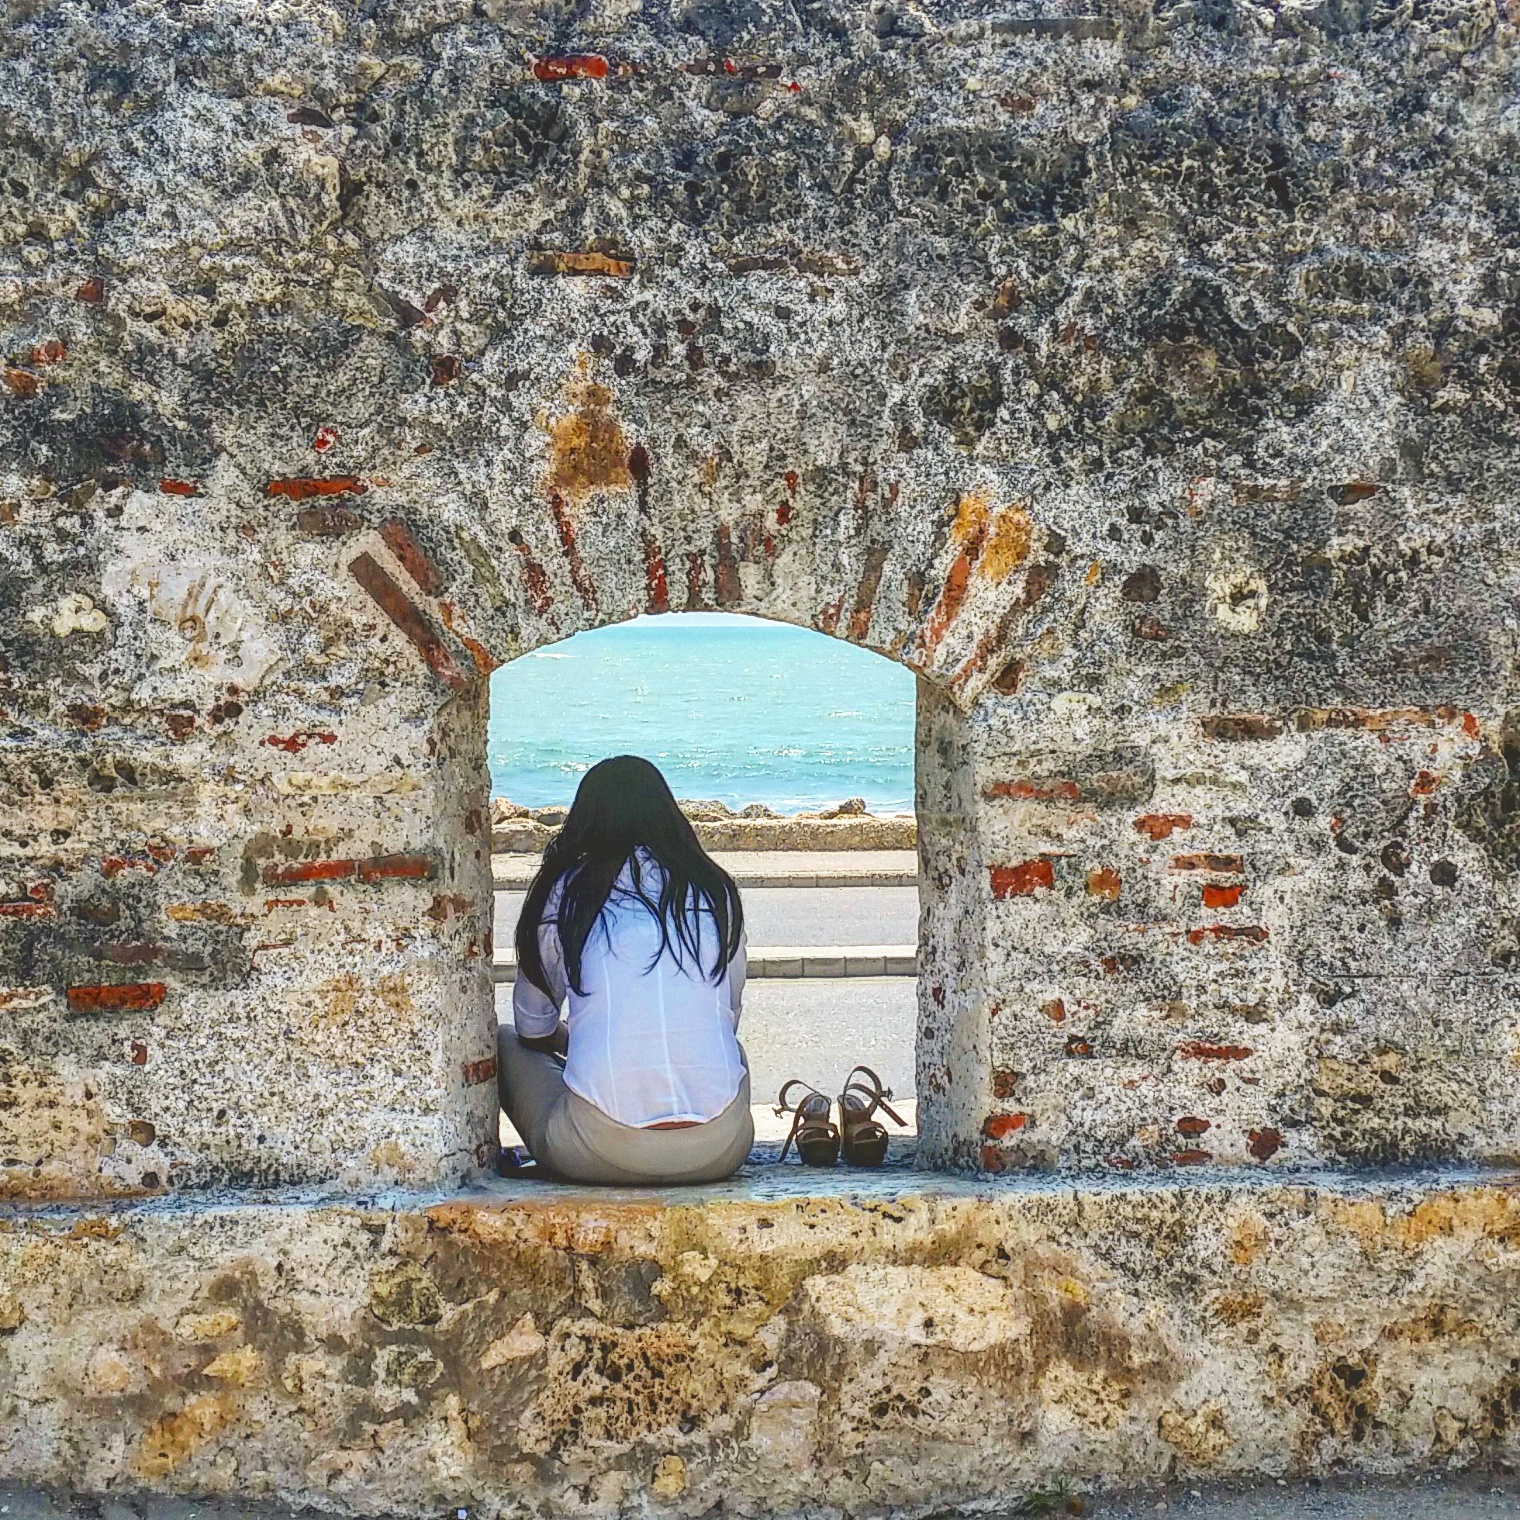 Along the famed wall of the historic area are these canon windows. Used to house large cannons during wartime. Now they act as small, seated windows where you often see young lovers at dusk canoodling with each other or, solo wanderers eating their lunch.